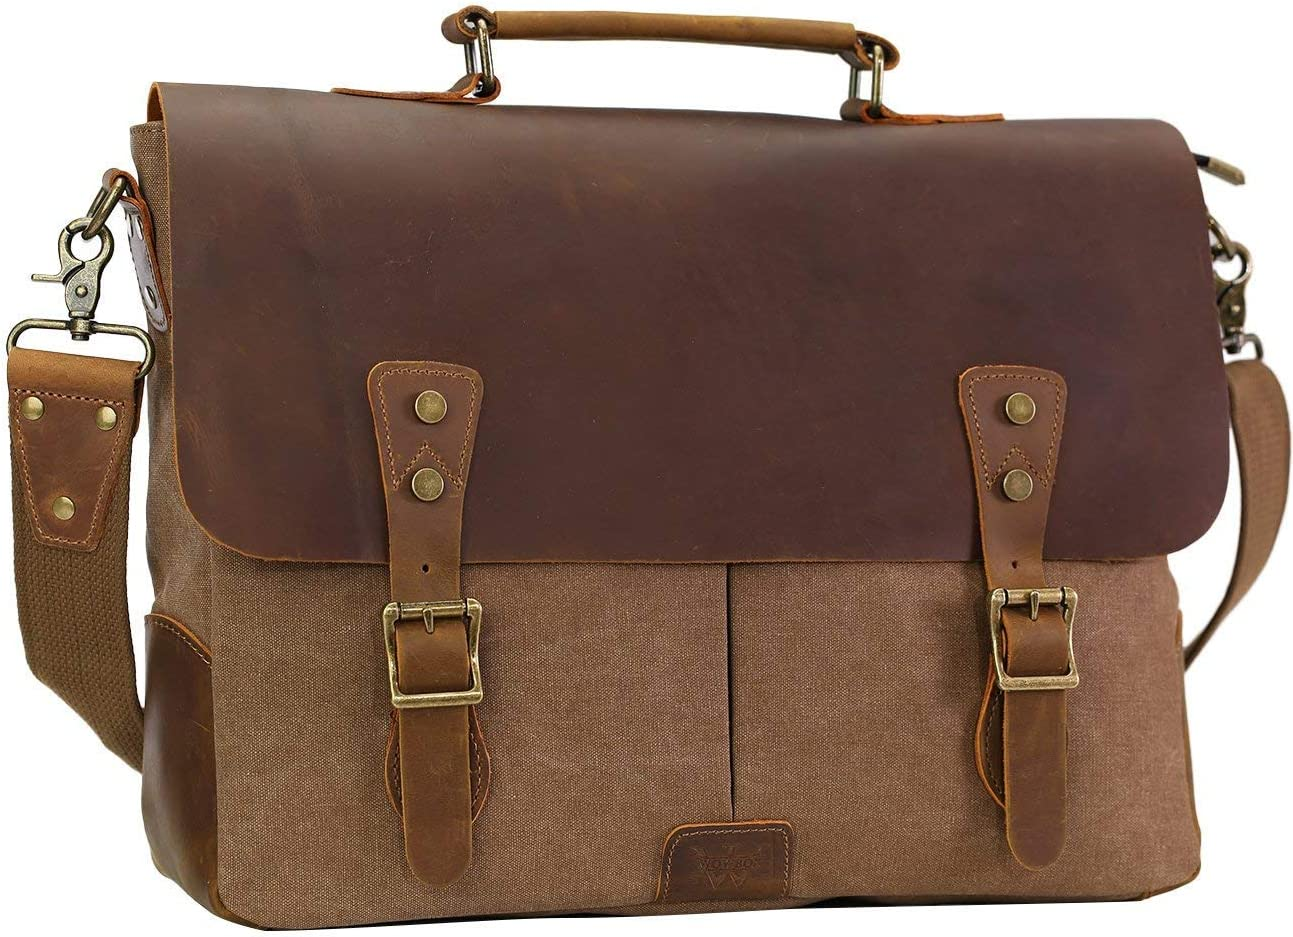 "WOWBOX Messenger Bag for Men 15.6"" Leather Laptop Satchel Briefcase Bags Coffee"